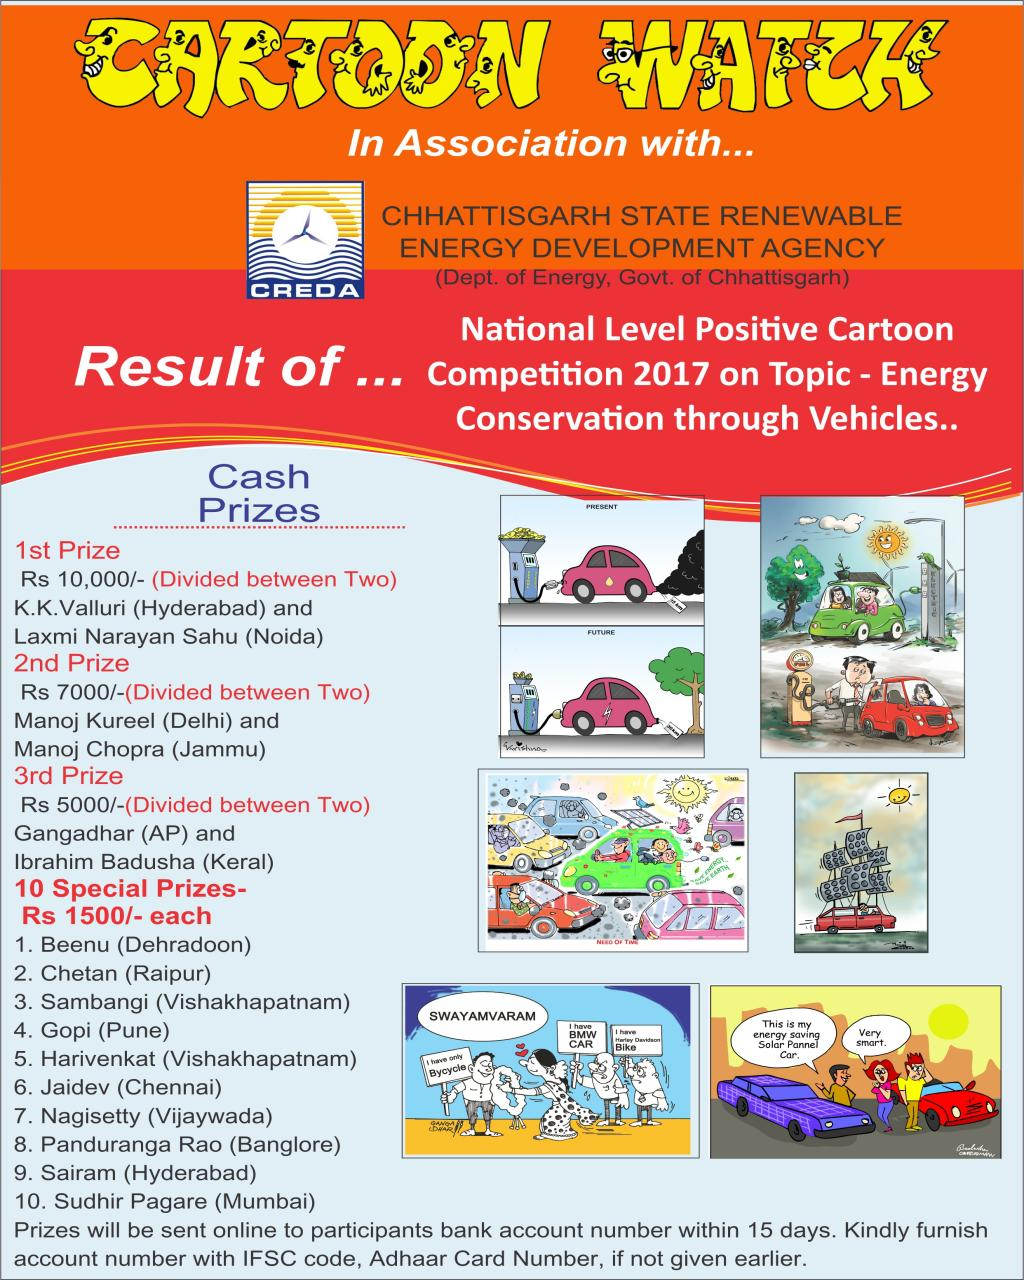 Result of Cartoon Competition Creda 2017